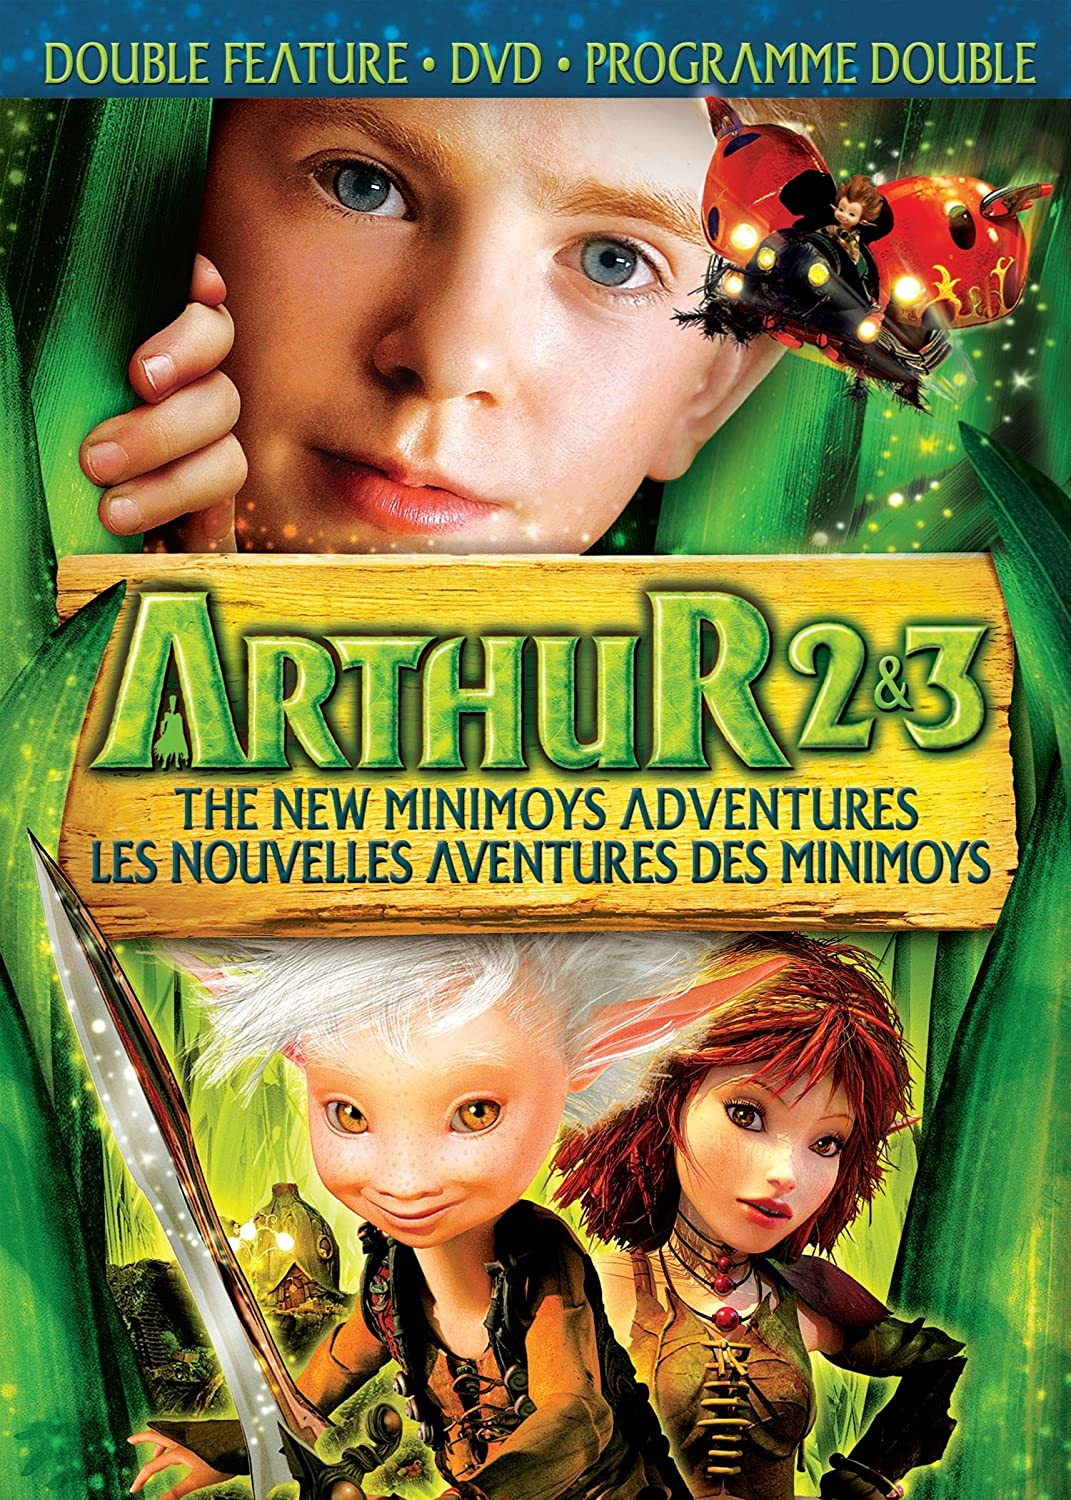 Amazon Com Arthur The New Minimoys Adventures Arthur 2 The Revenge Of Maltazard Arthur 3 The War Of Two Worlds Double Feature Selena Gomez Freddie Highmore Logan Miller Mia Farrow Ron Crawford